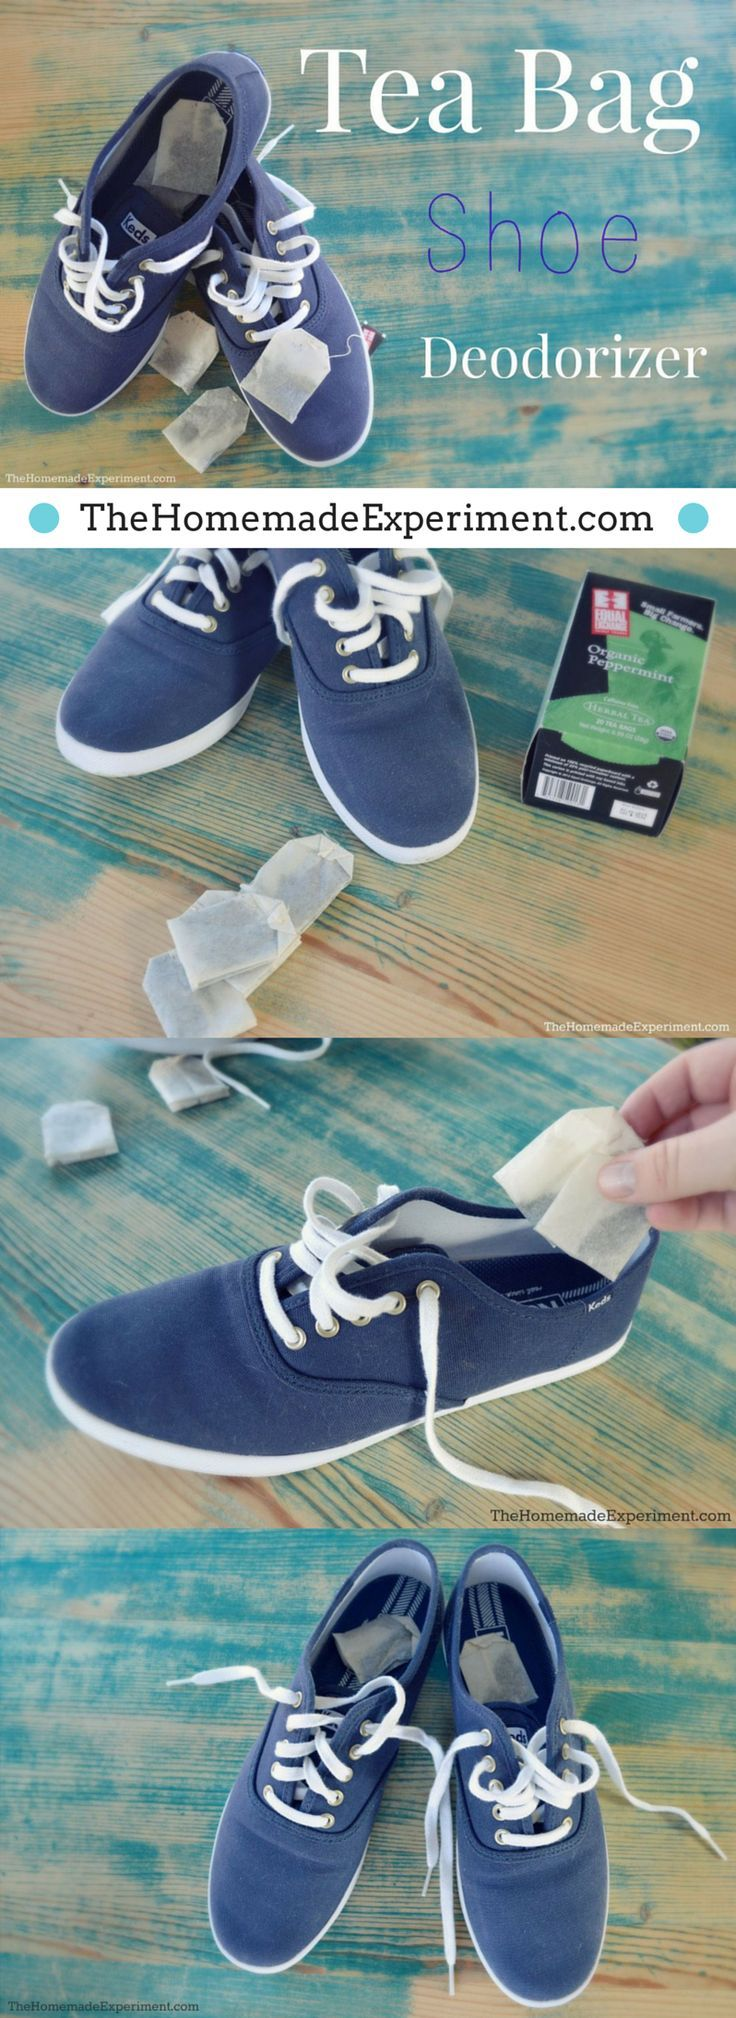 Here's how to use tea bags as a simple #homemade #DIY shoe deodorizer. @homemadeexp visit thehomemadeexperiment.com/homemade-tea-bag-shoe-deodorizer